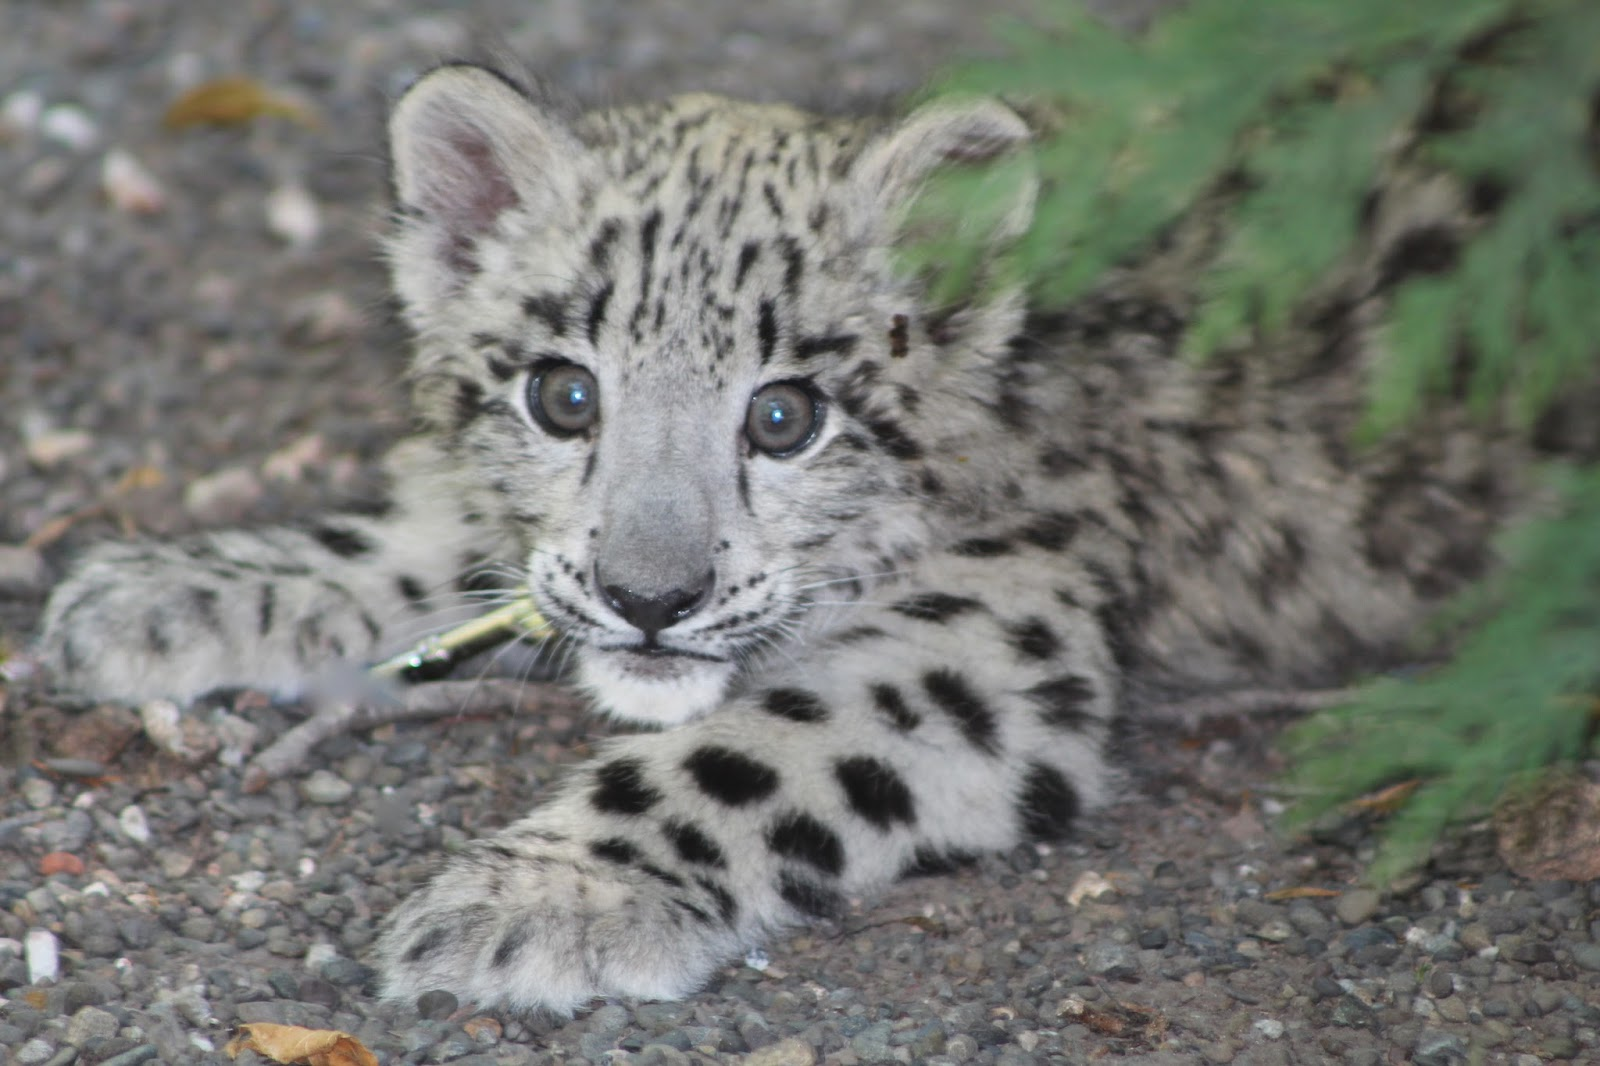 He Is A Baby Snow Leopard Born May 22nd This Year What Gorgeous Experience To See Touch Play With And Photograph Beautiful